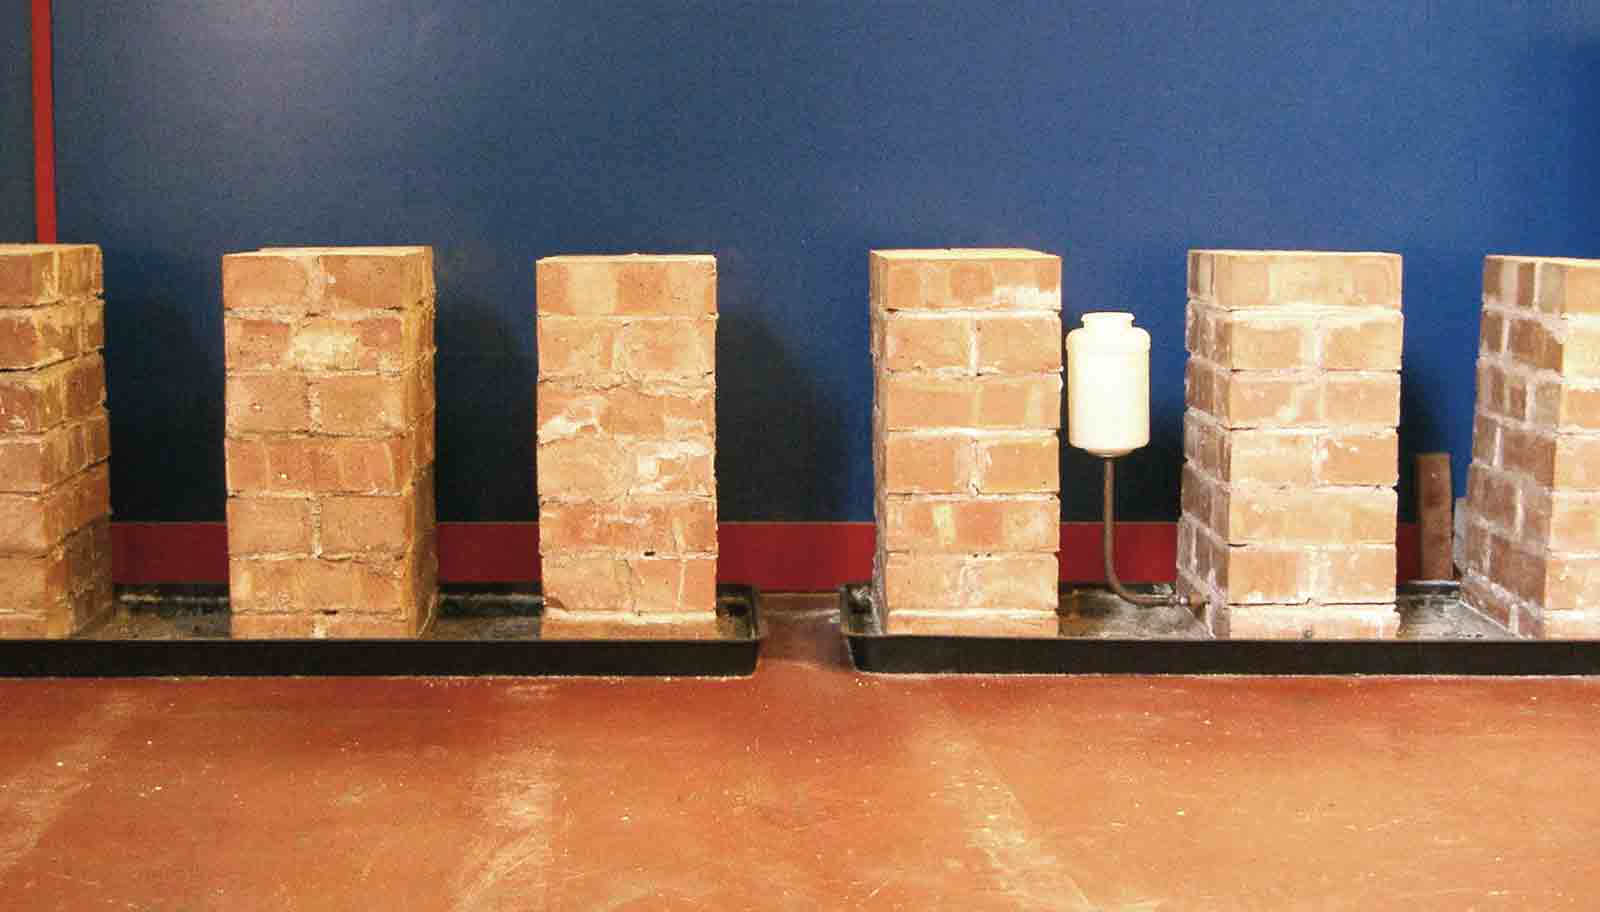 Rising damp brick pillar test